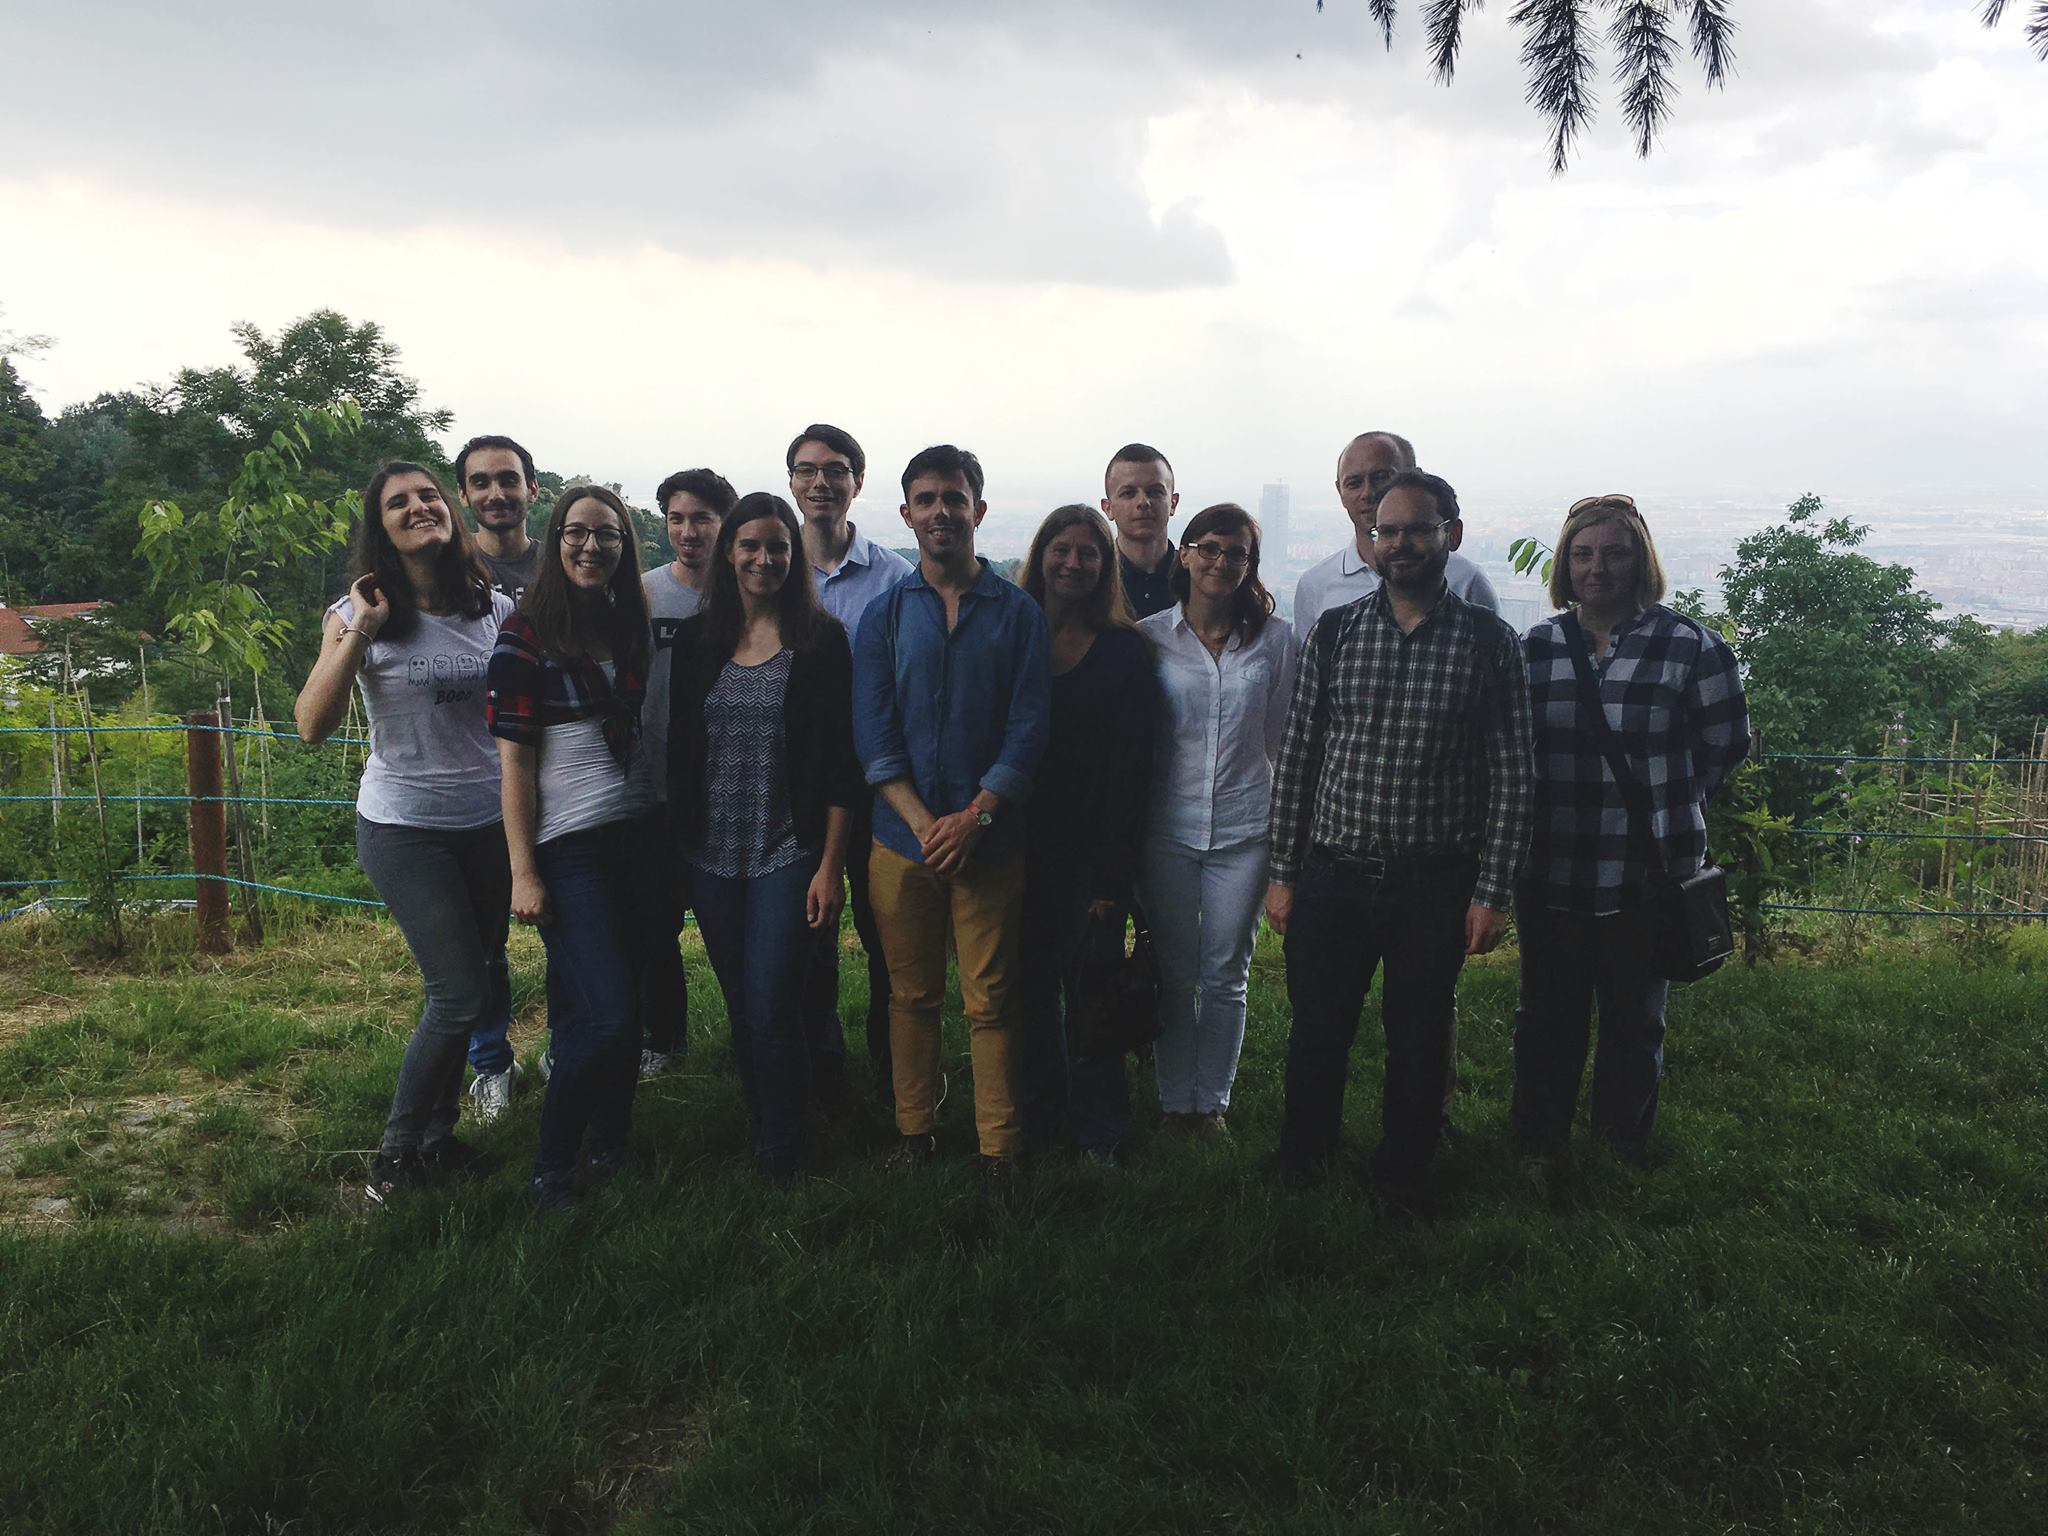 A group photo of the Environmental Learning Illustrated project team members standing in a field.